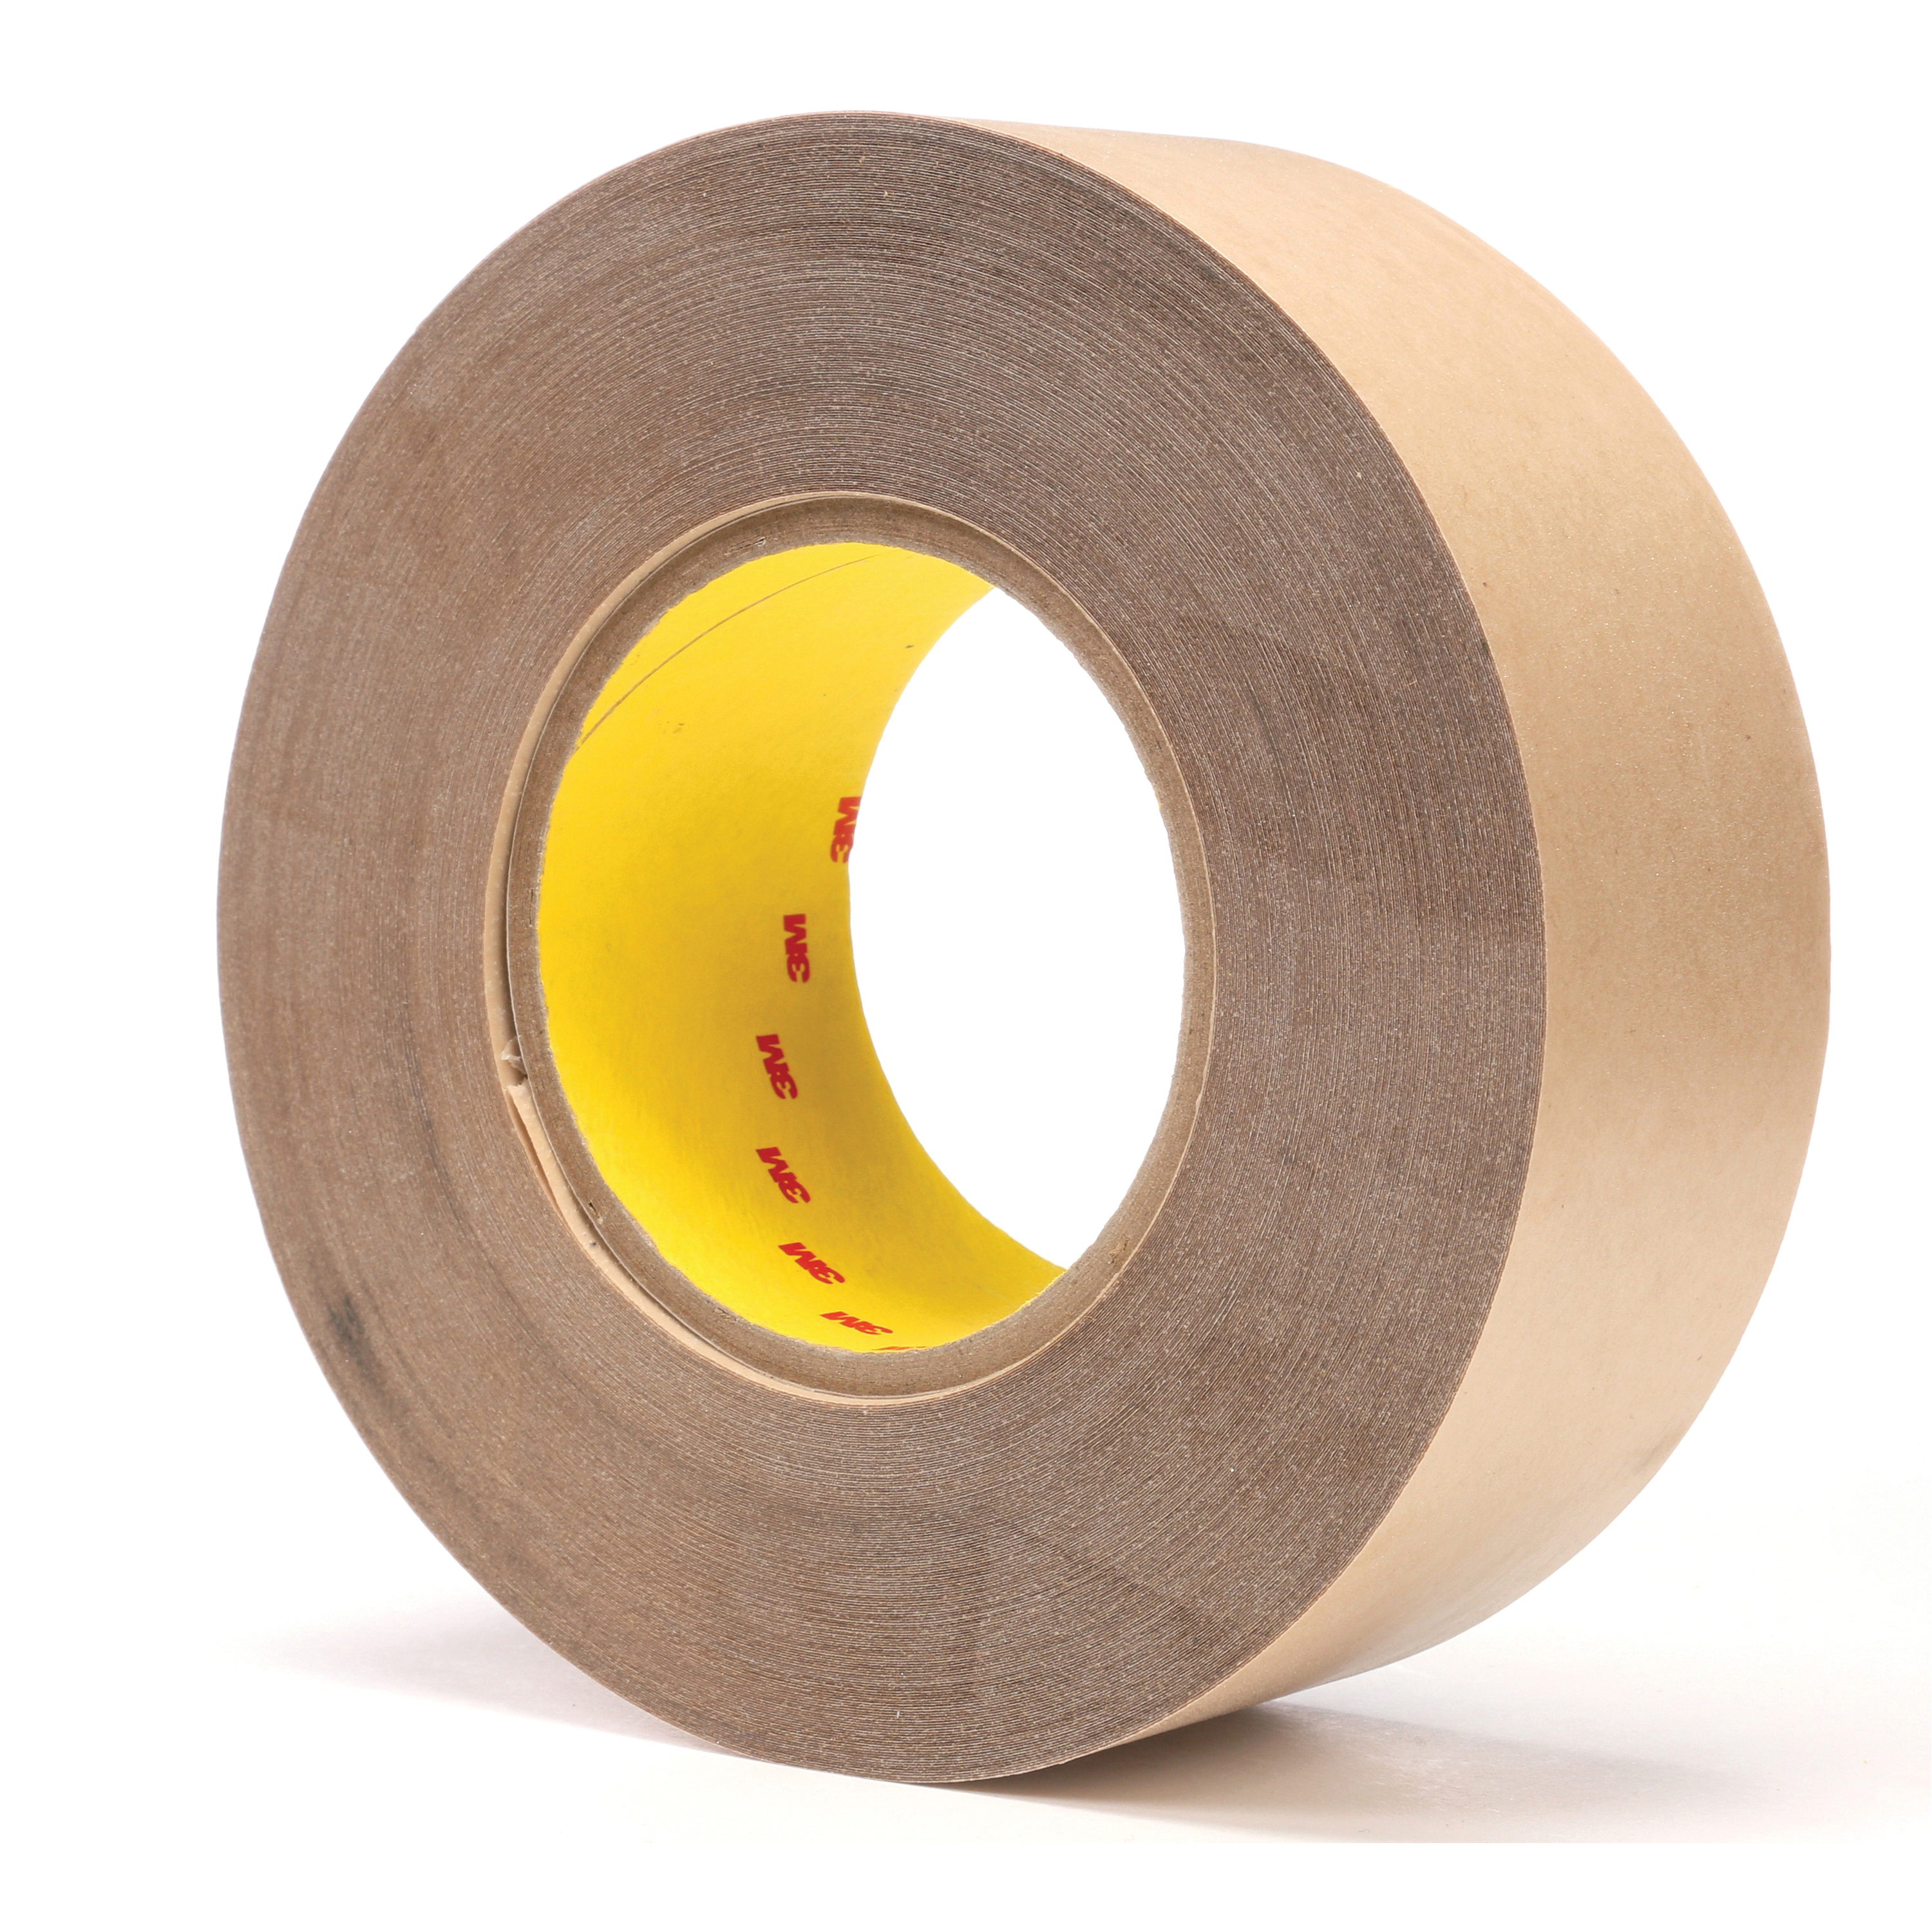 3M™ 021200-67413 High Tack High Performance Adhesive Transfer Tape, 60 yd L x 2 in W, 9.2 mil THK, 5 mil 350 Acrylic Adhesive, Clear